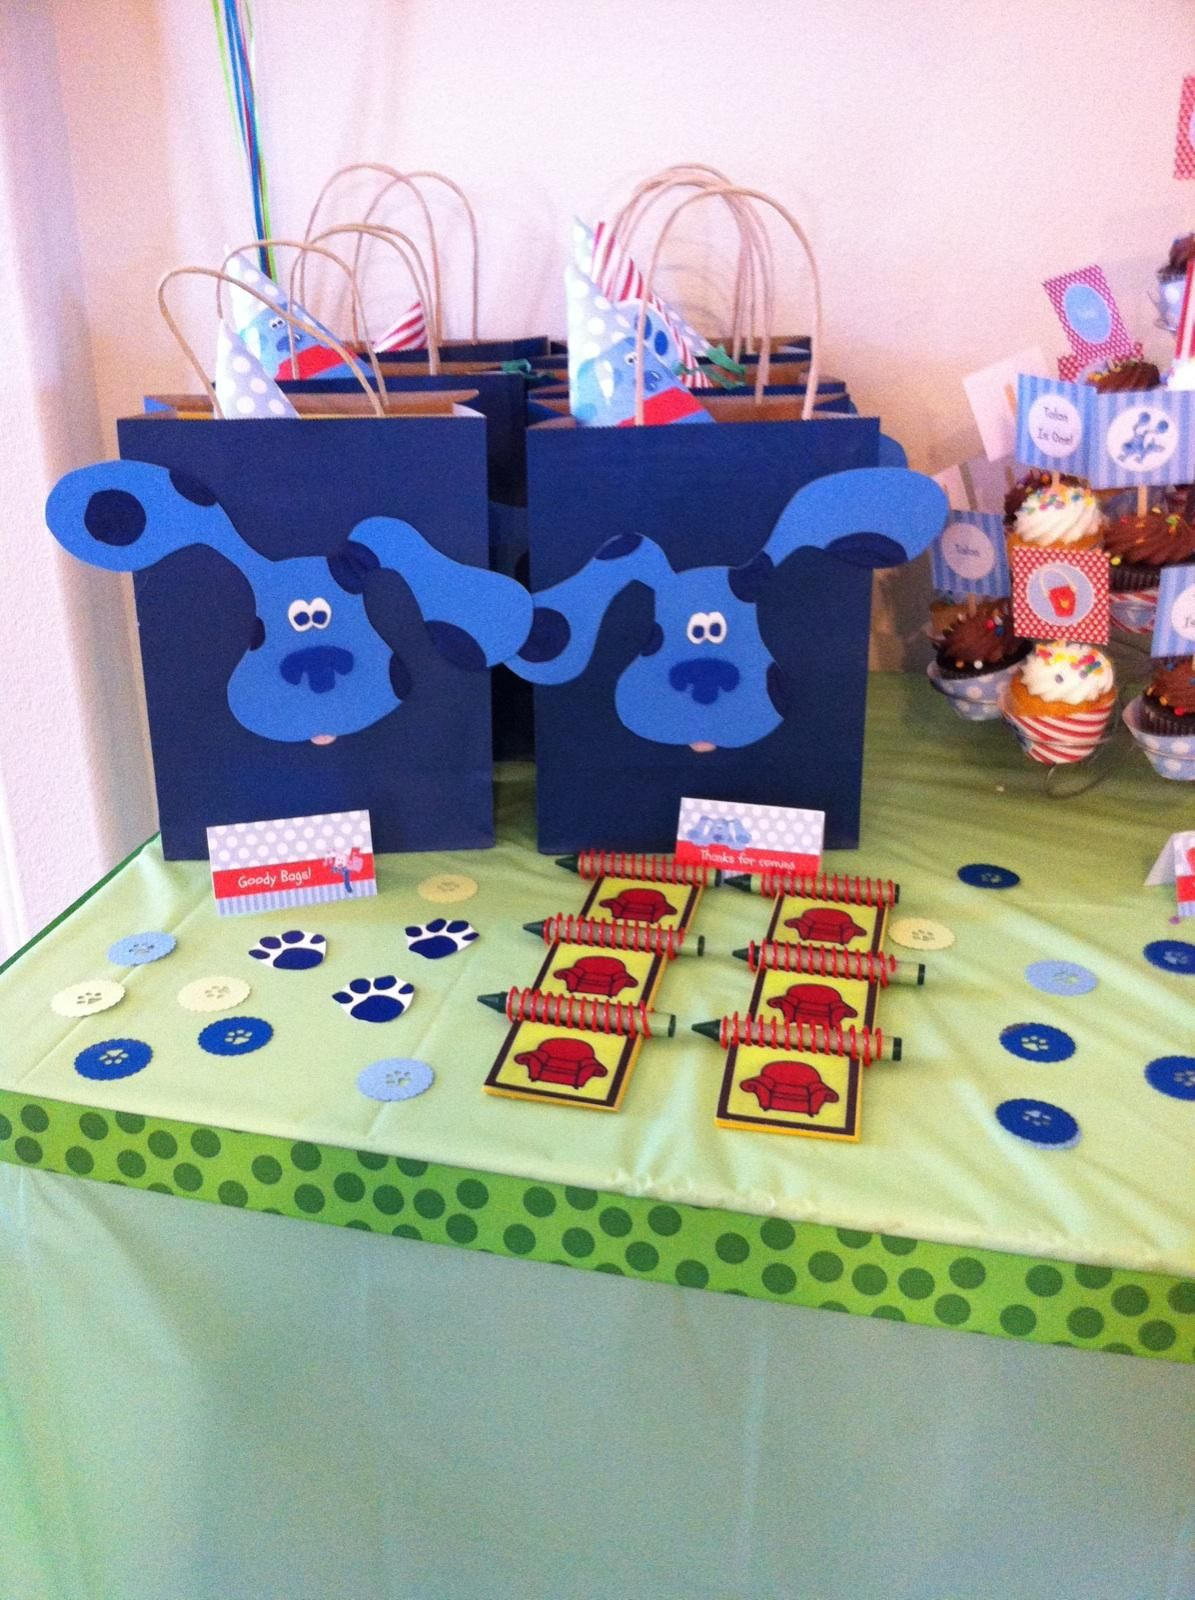 blues clues party pic for inspiration make me an awesome party